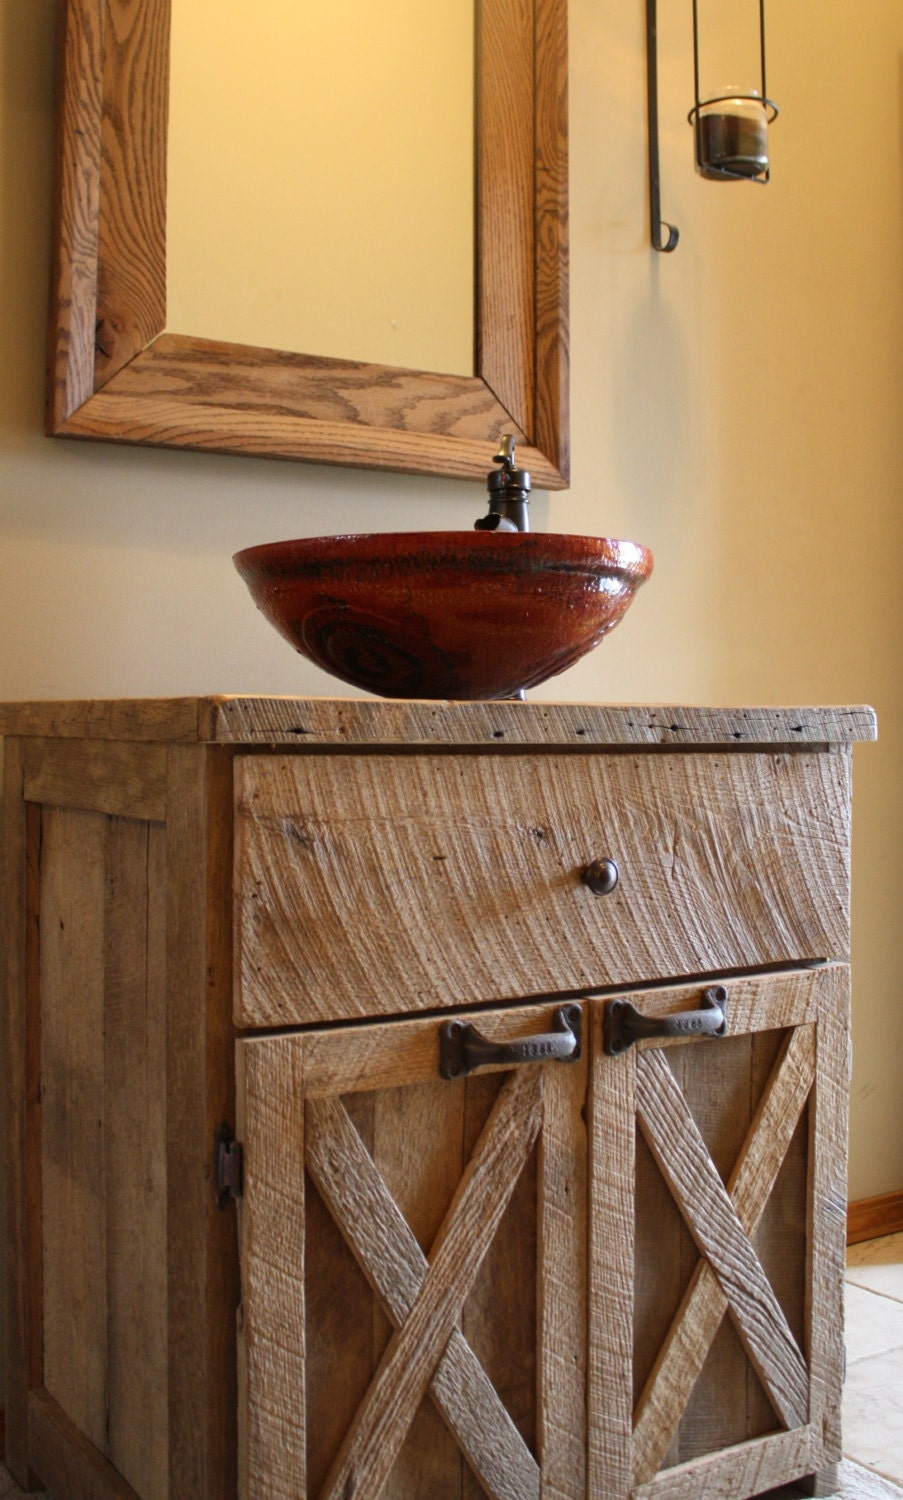 Your Custom Rustic Barn Wood Vanity Or Cabinet With 2 Barn